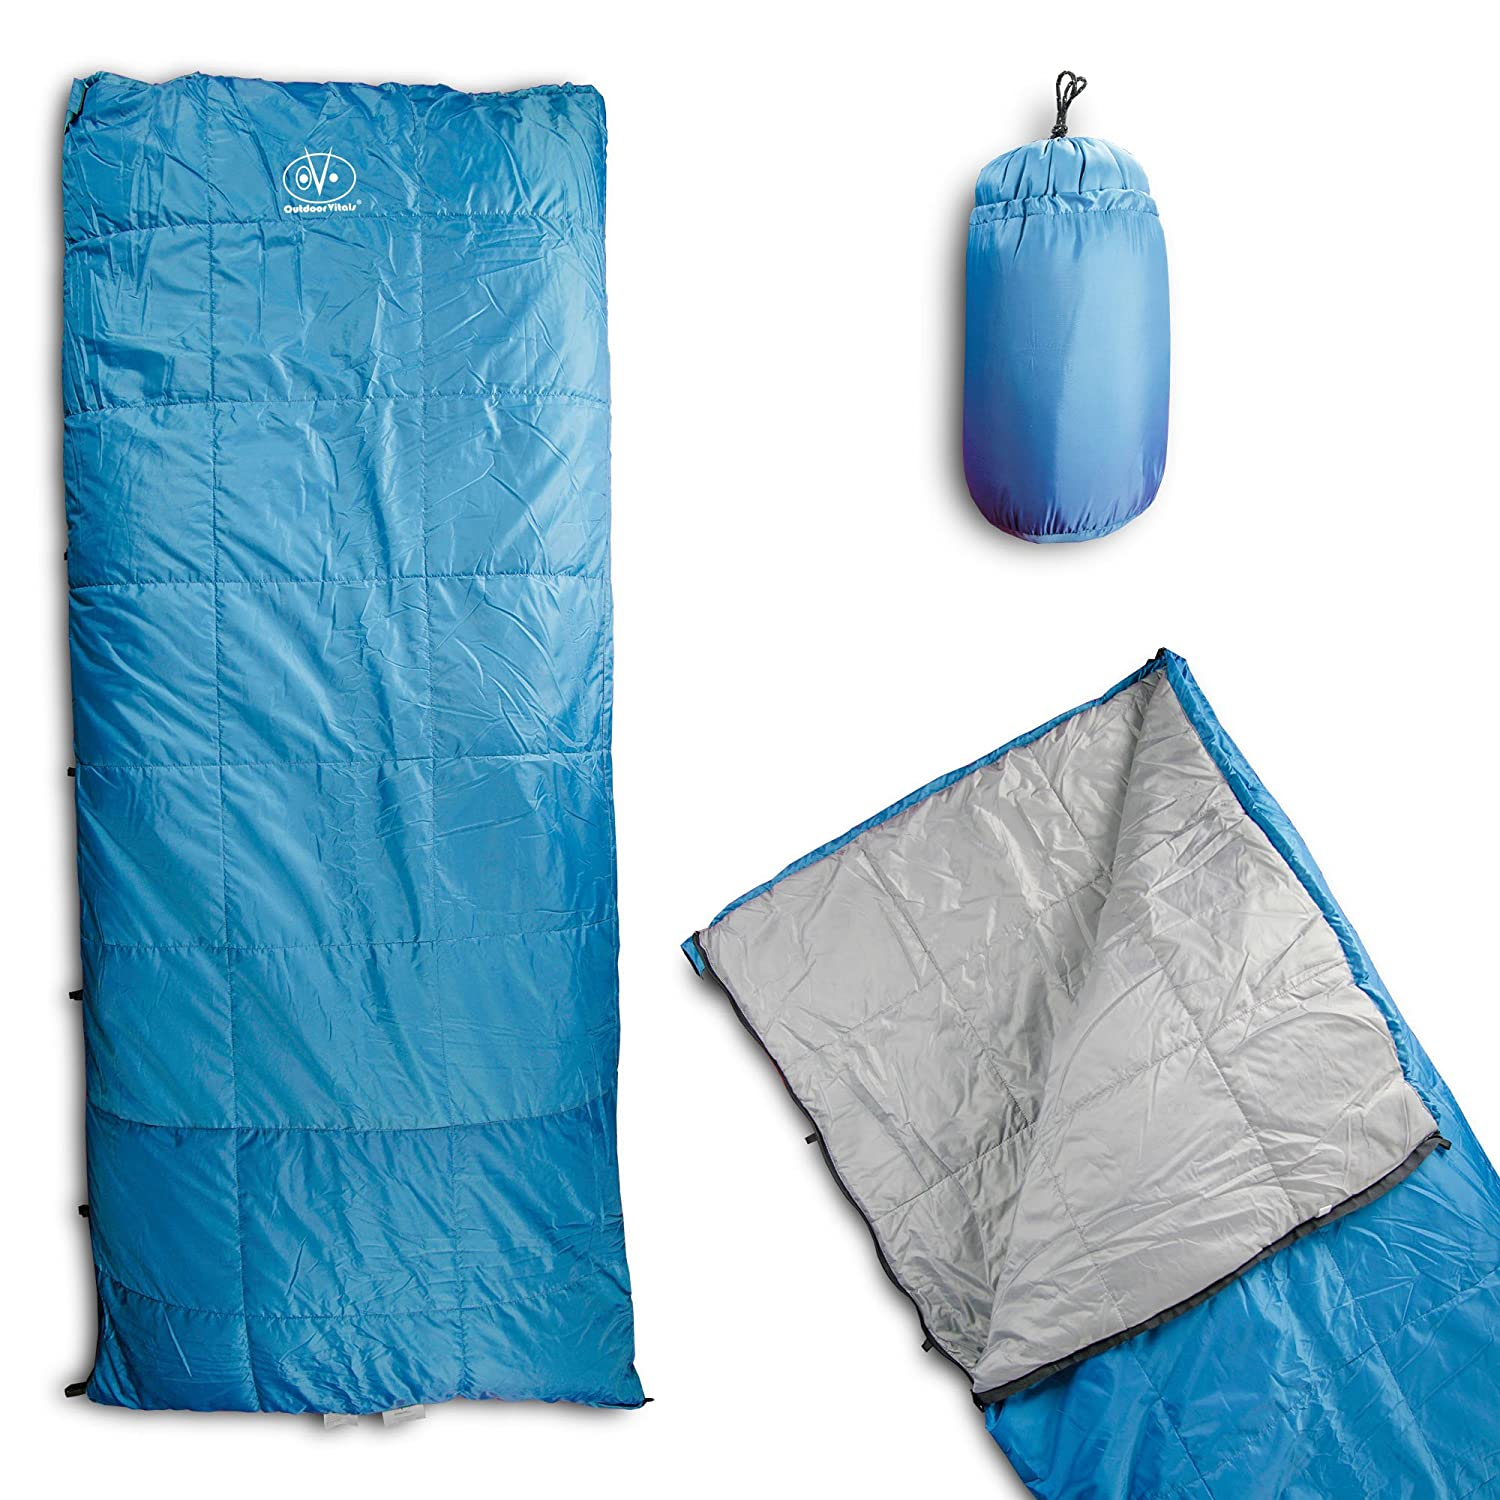 Outdoor Vitals OV-Roost 40°F UnderQuilt / Sleeping Bag